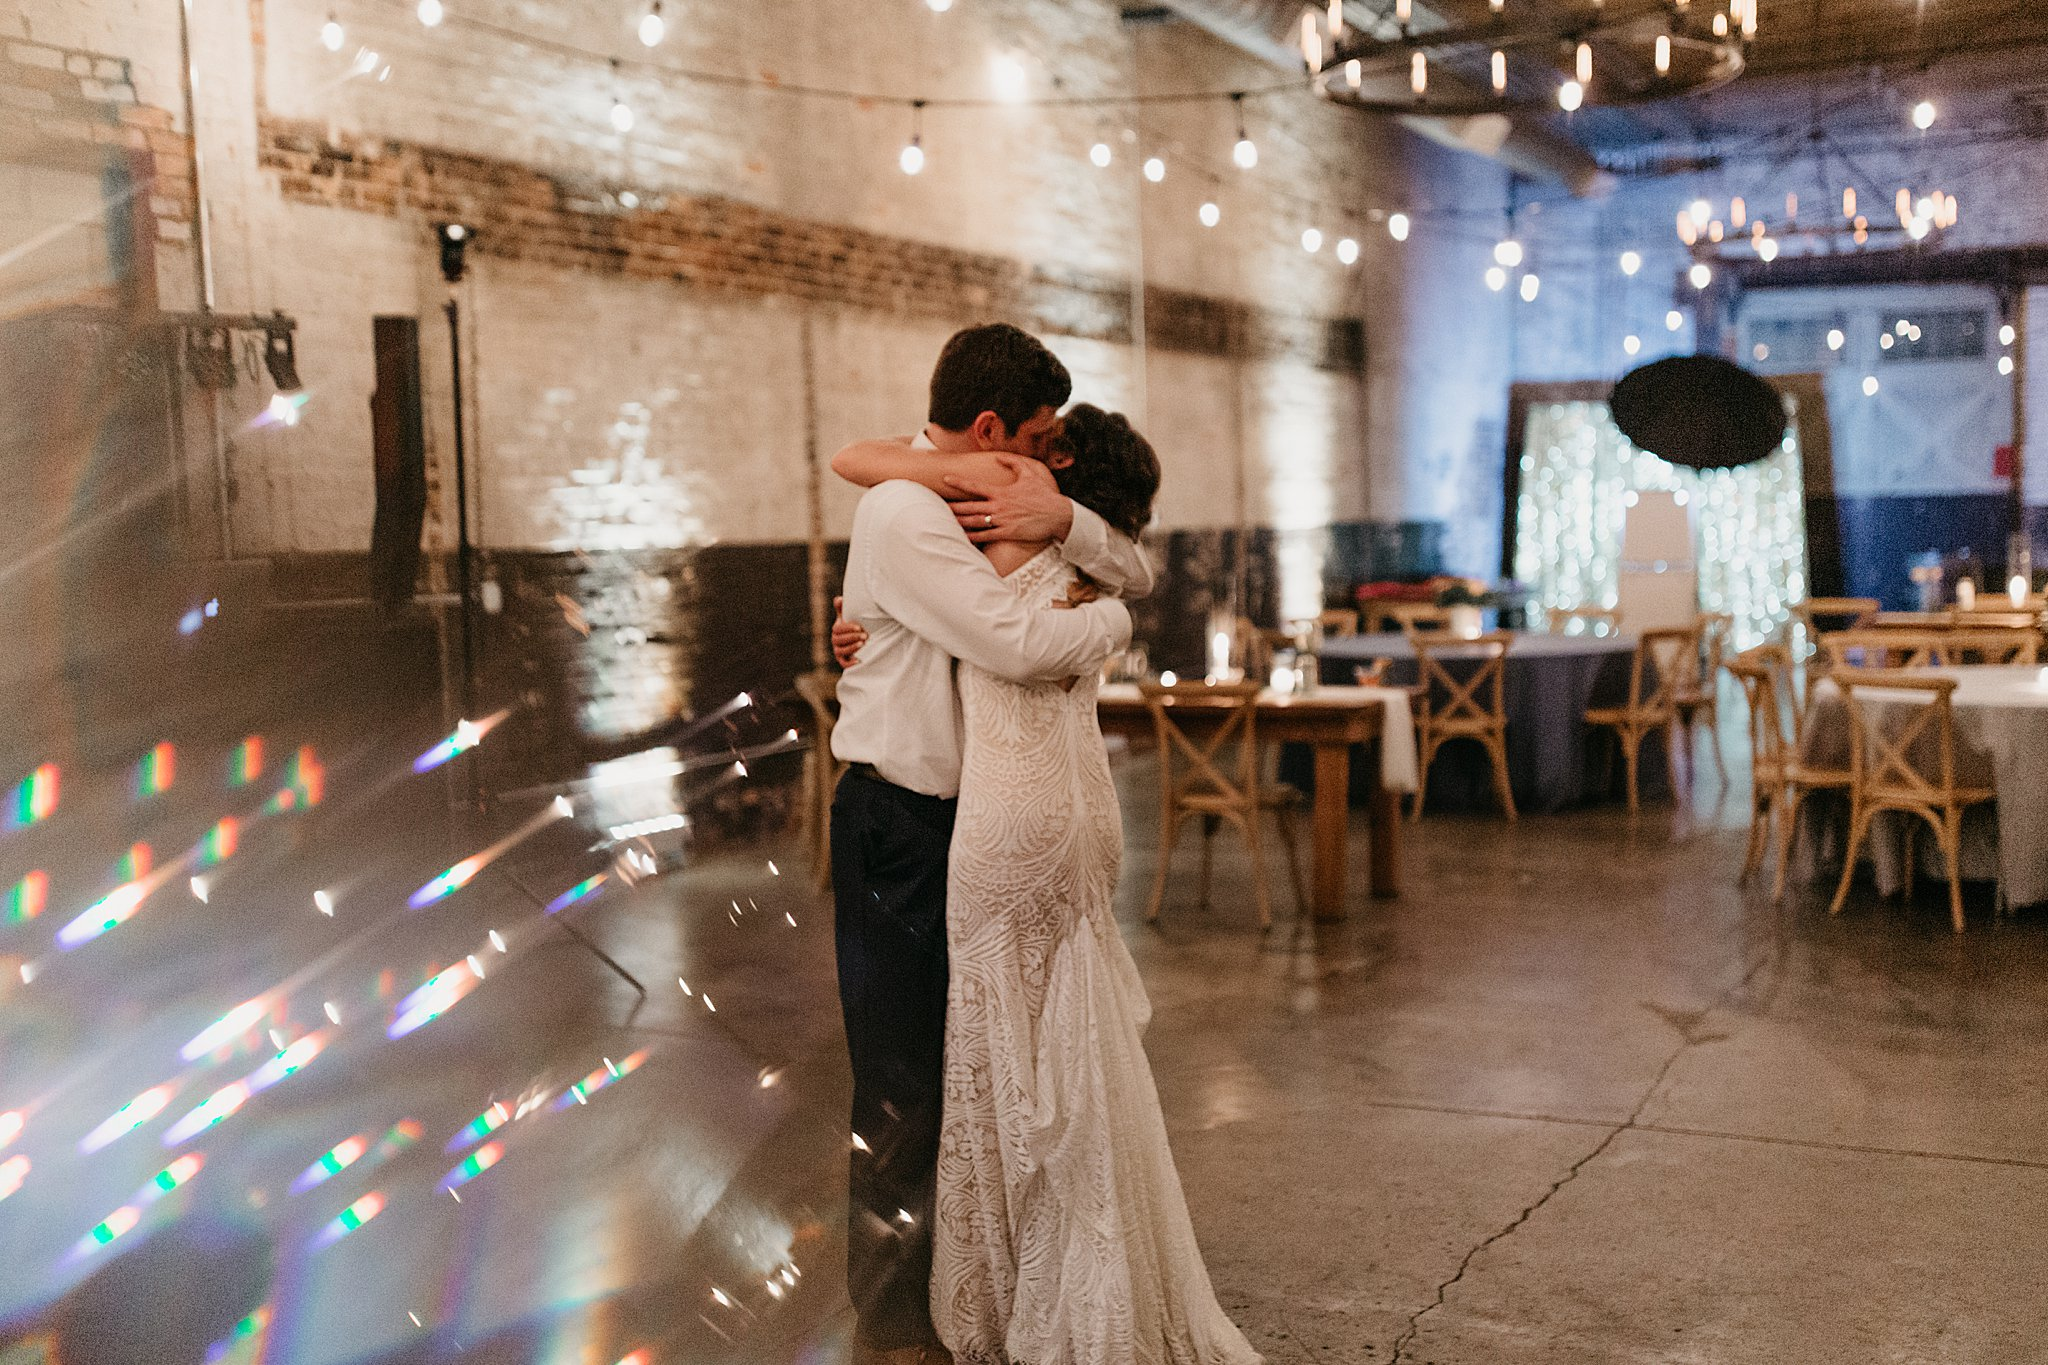 Wilderlove Co_Wedding Photographer_Industrial Wedding_Jewish Wedding_Dallas Texas Wedding_Brake & Clutch Warehouse_North Texas Photographer_0102.jpg